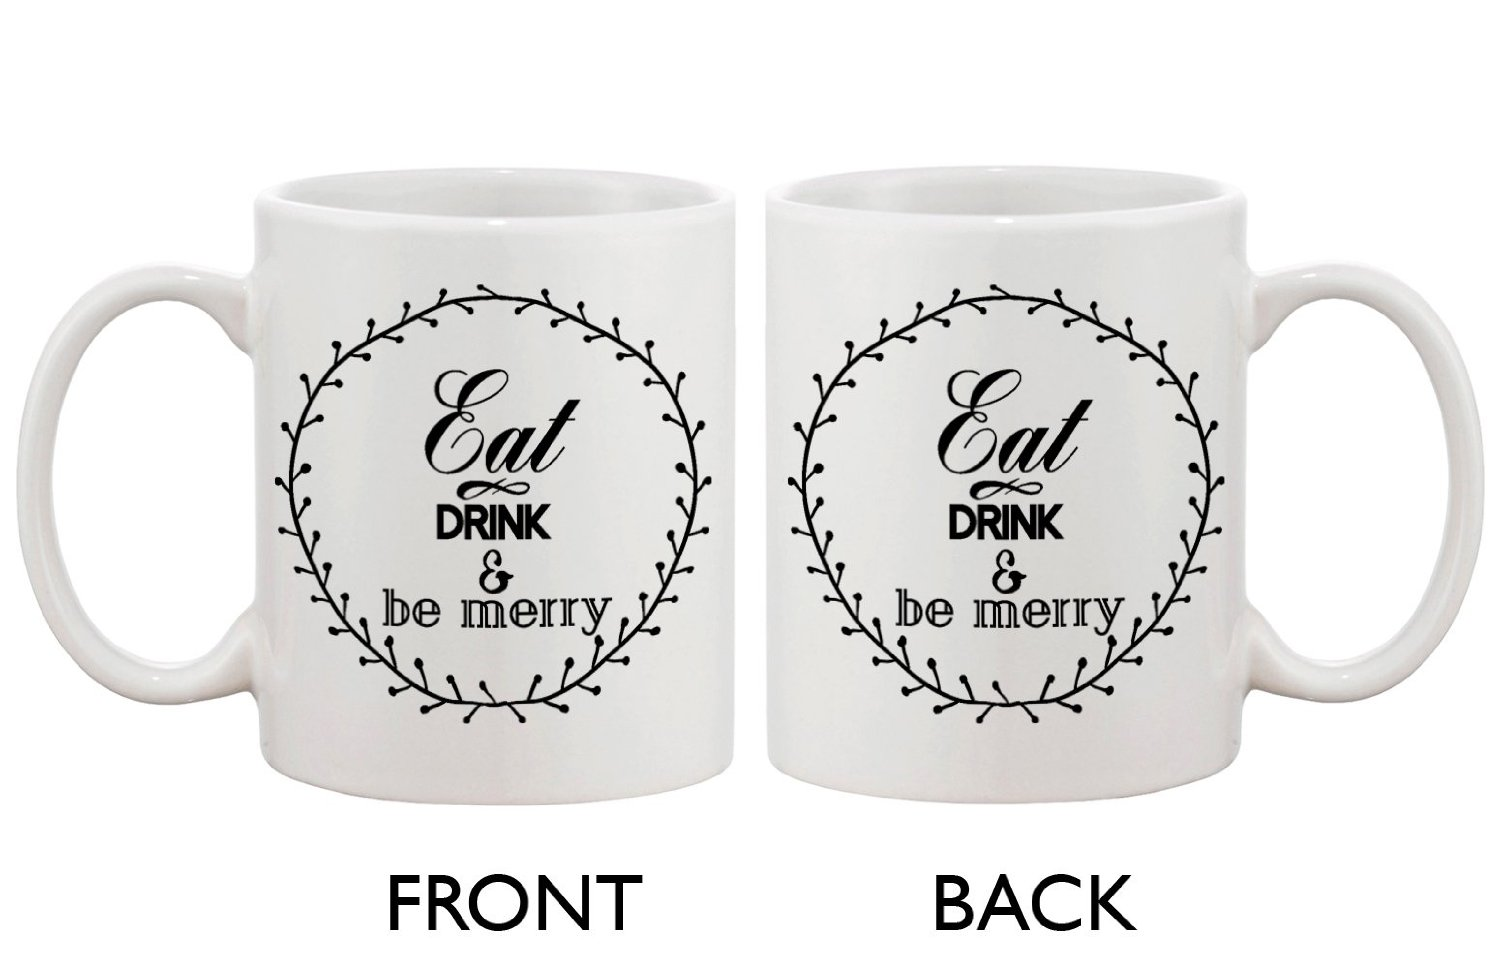 com eat drink and be merry mugs for holiday christmas gift idea